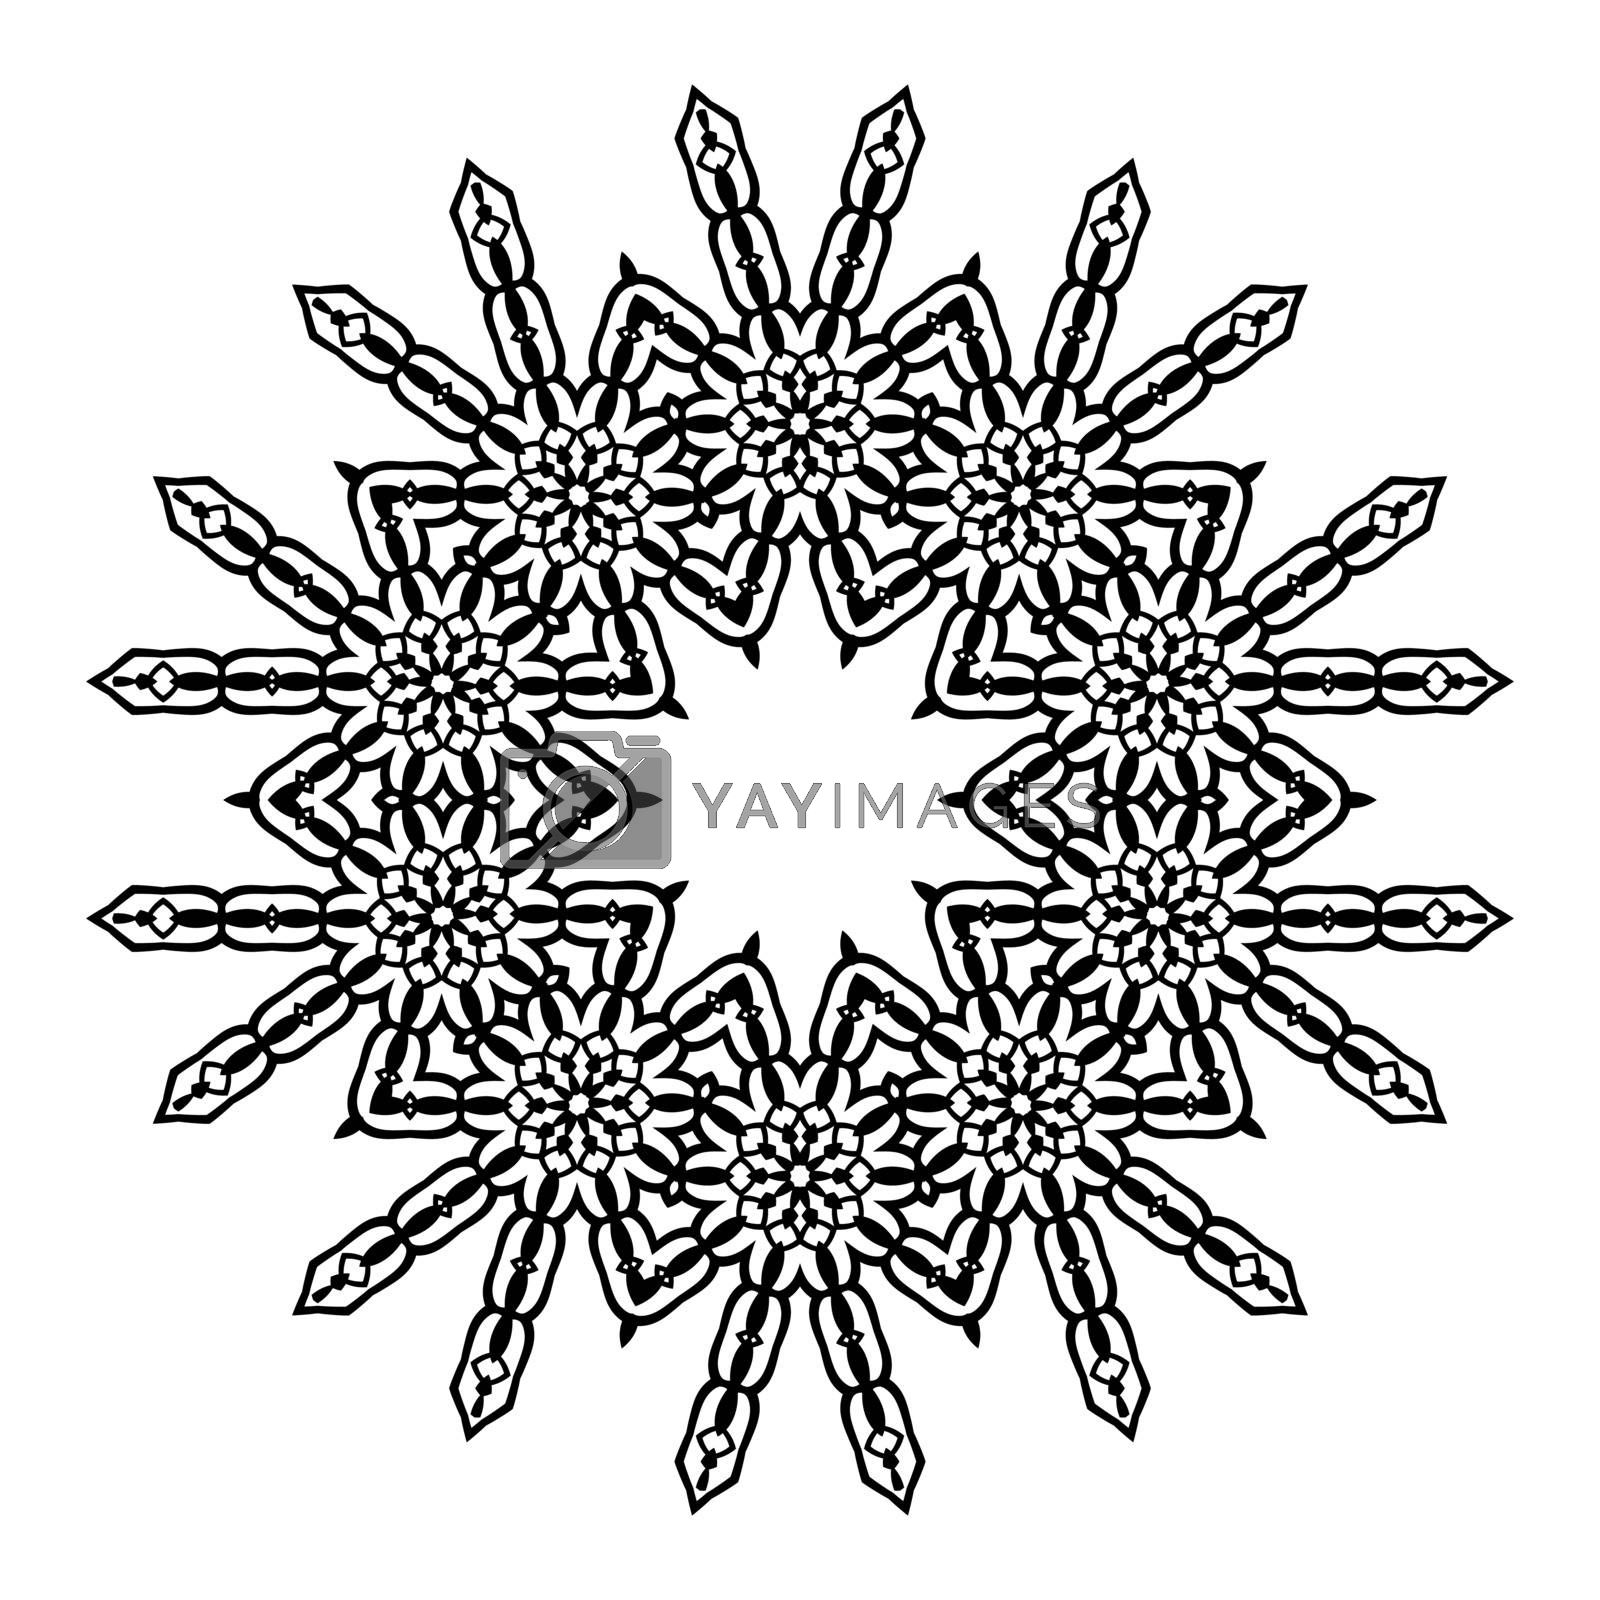 Mandala. Ethnic decorative elements. Hand drawn background. Islam, Arabic Indian ottoman motifs